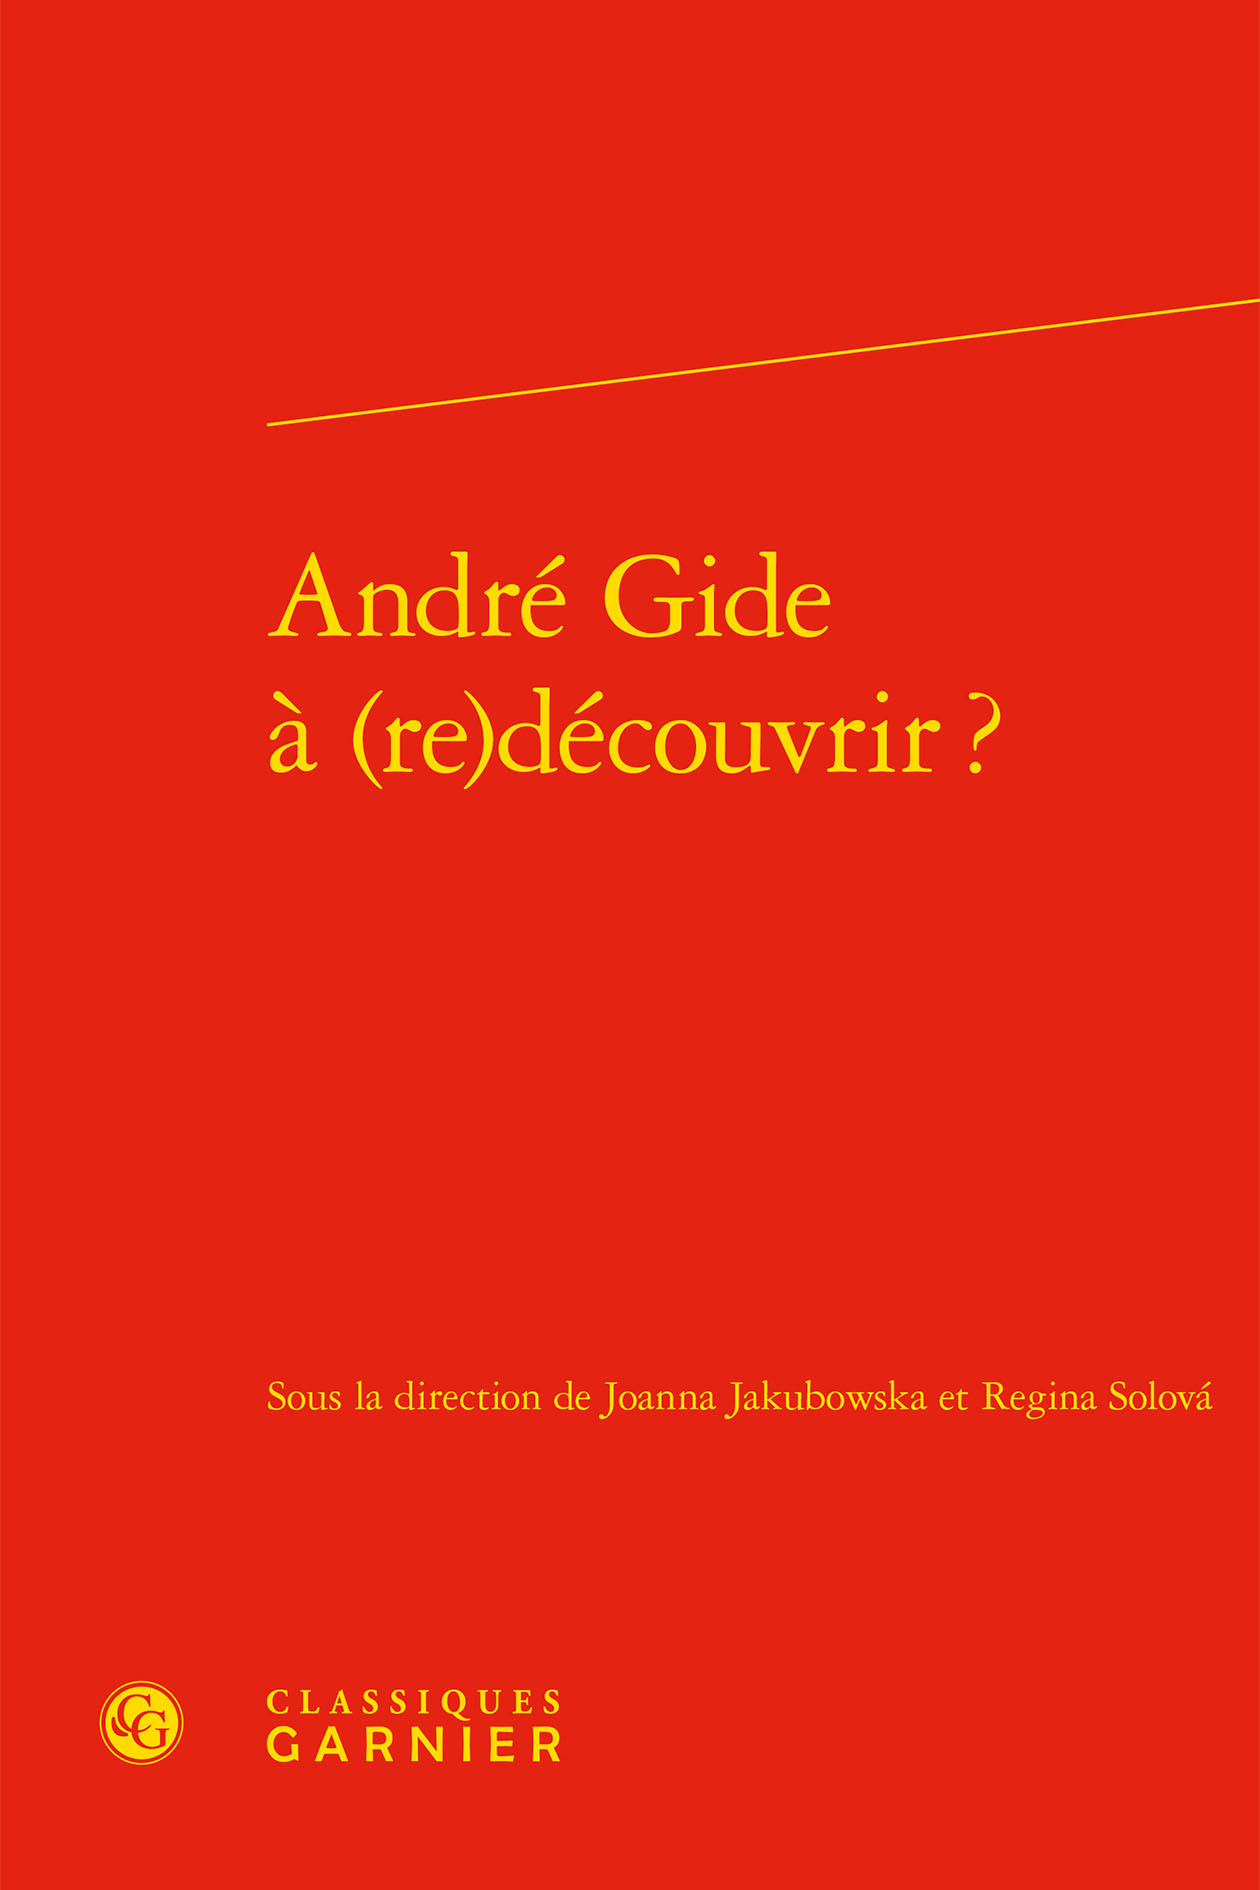 ANDRE GIDE A (RE)DECOUVRIR ?